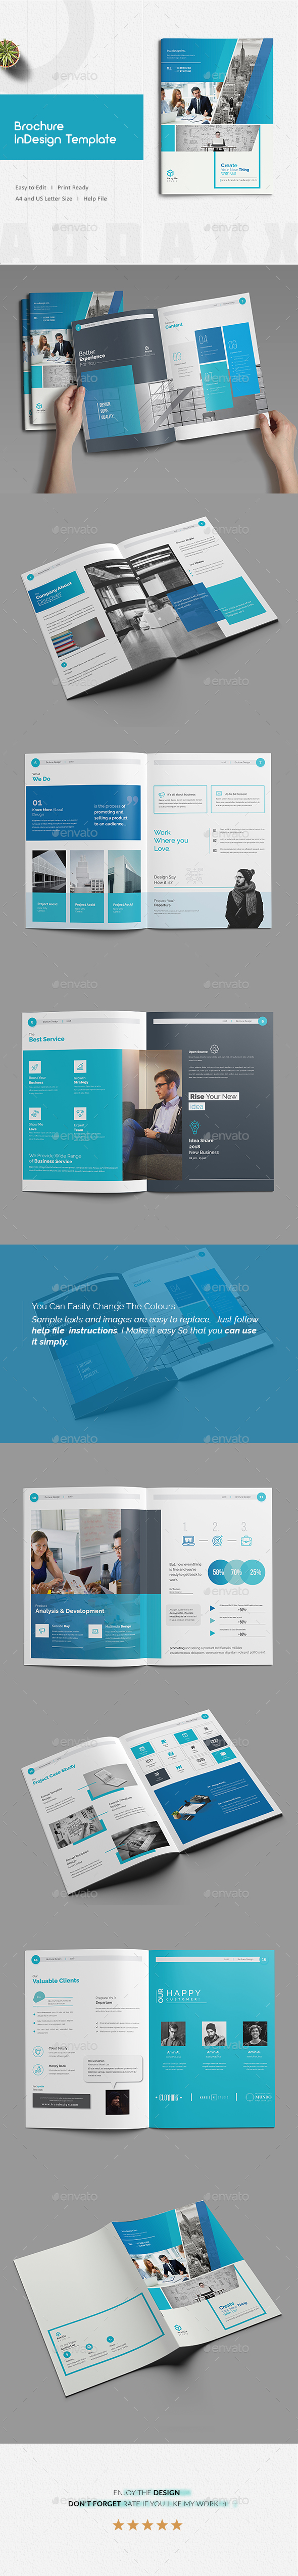 GraphicRiver Brochure Indesign Template 21171334